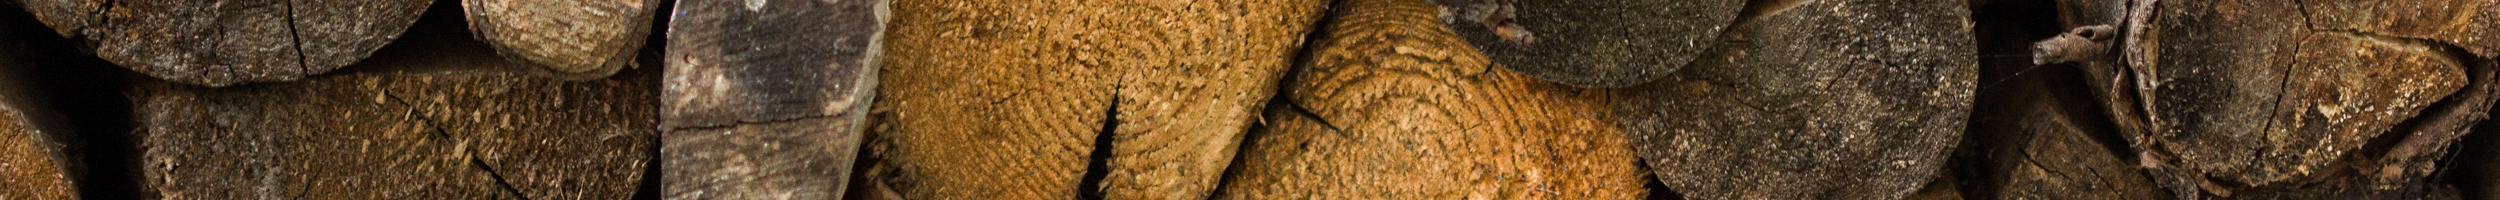 ALL FIRED UP cookie policy header image of logs stacked